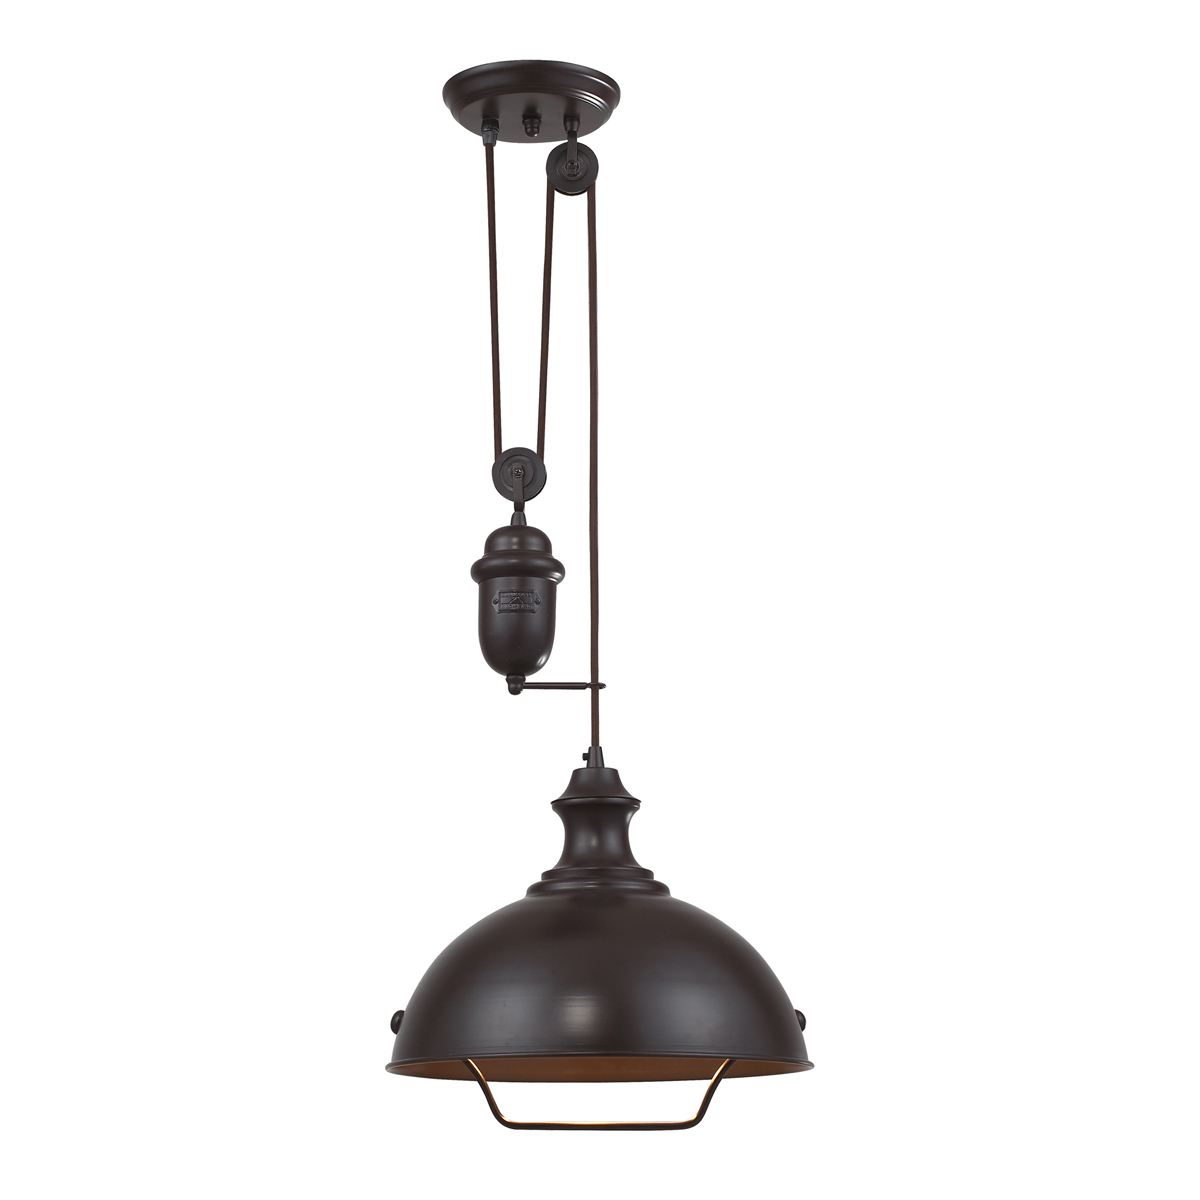 ELK Lighting 1 Farmhouse 14 Inch Pendant